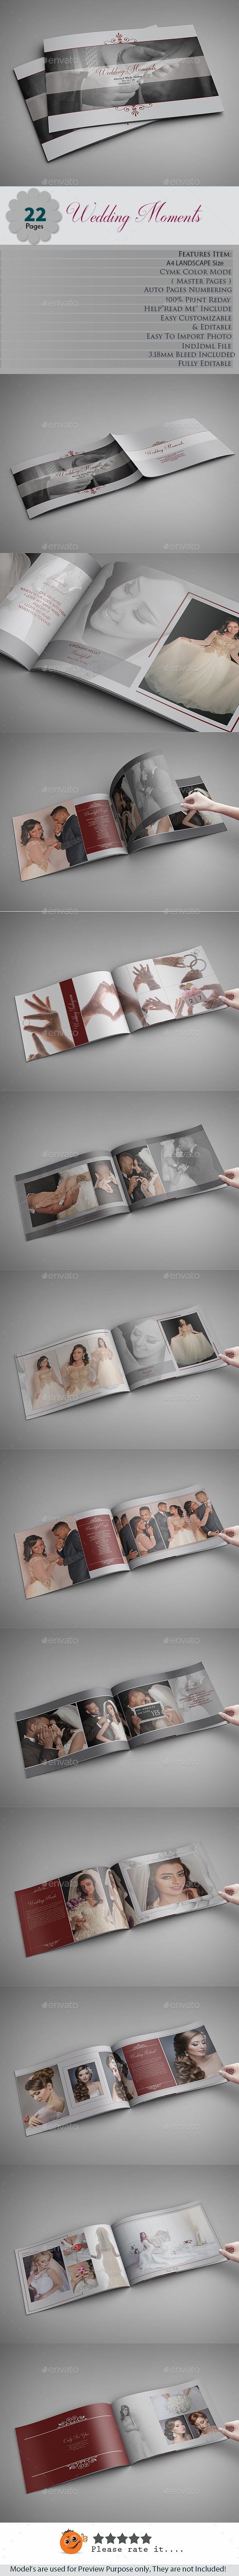 Wedding Moments Photo Albums - Photo Albums Print Templates